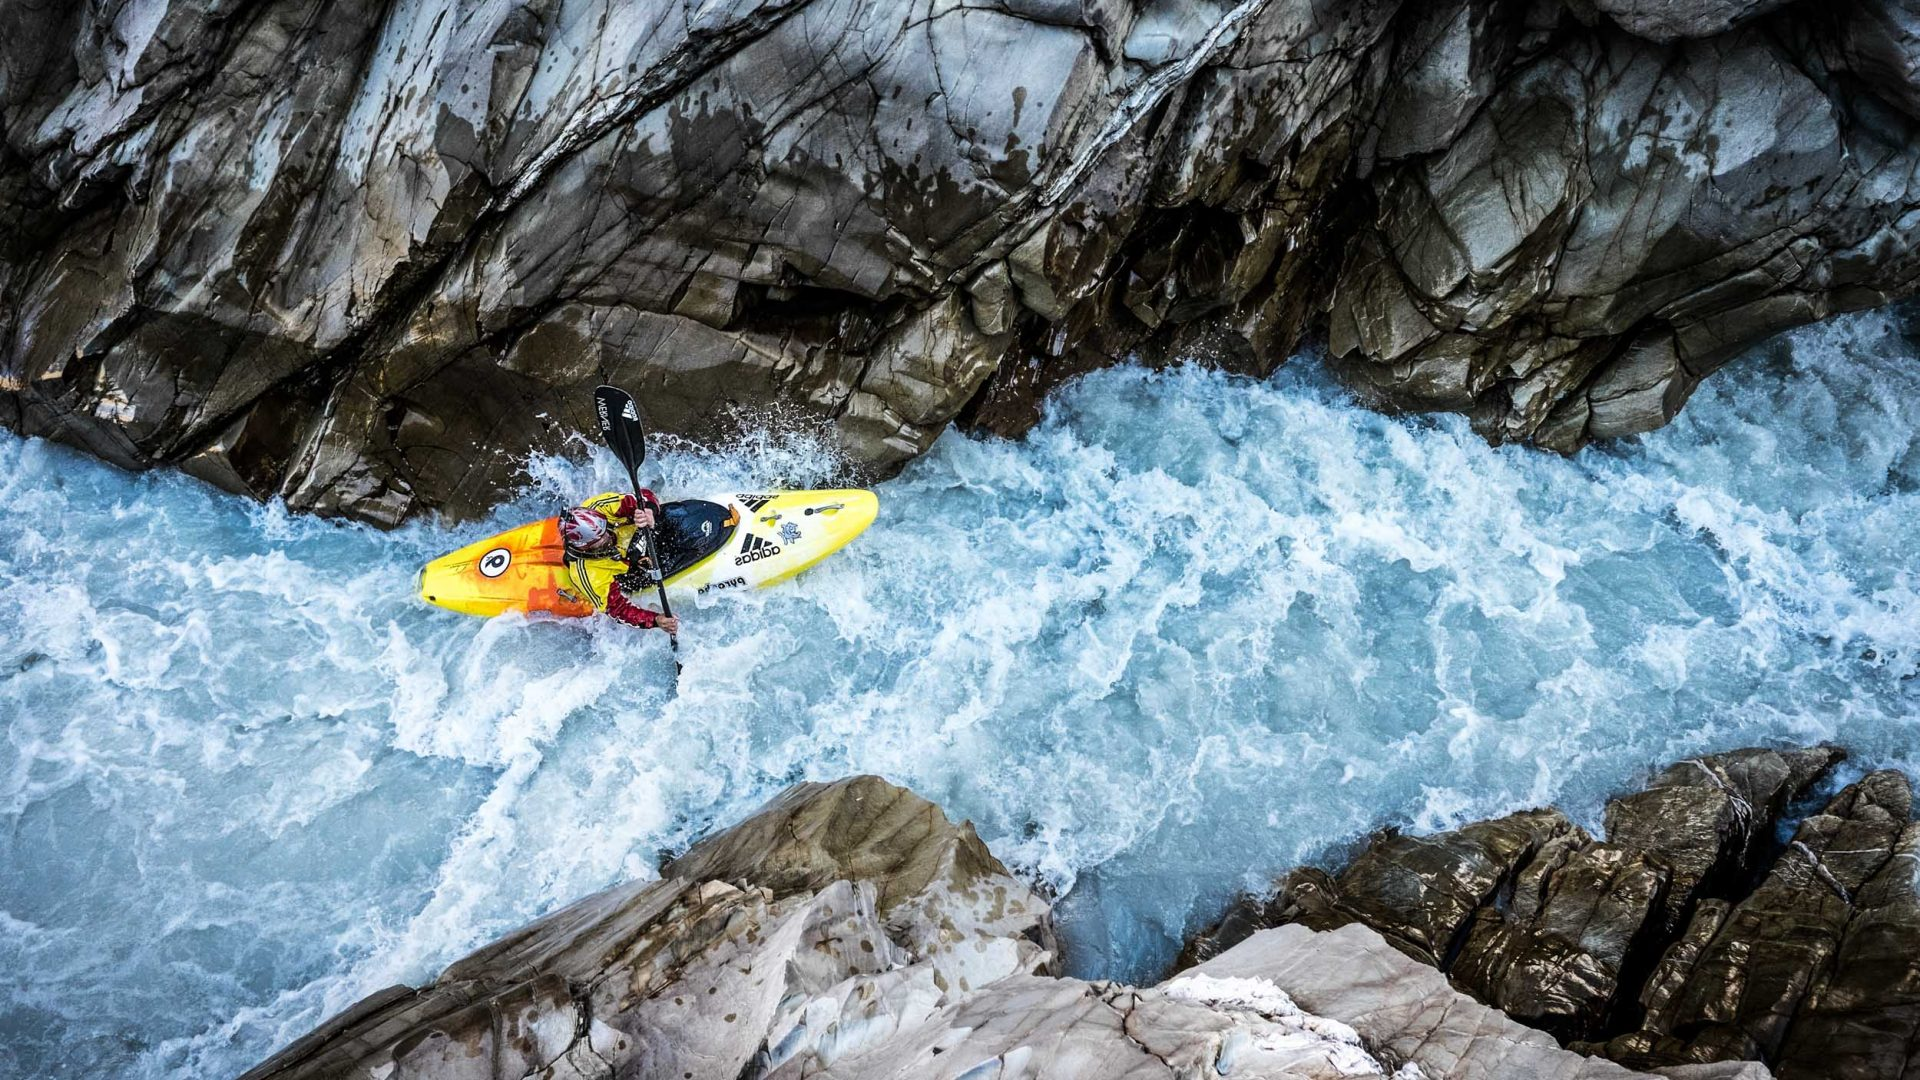 Kayaking down a rough and narrow gorge.